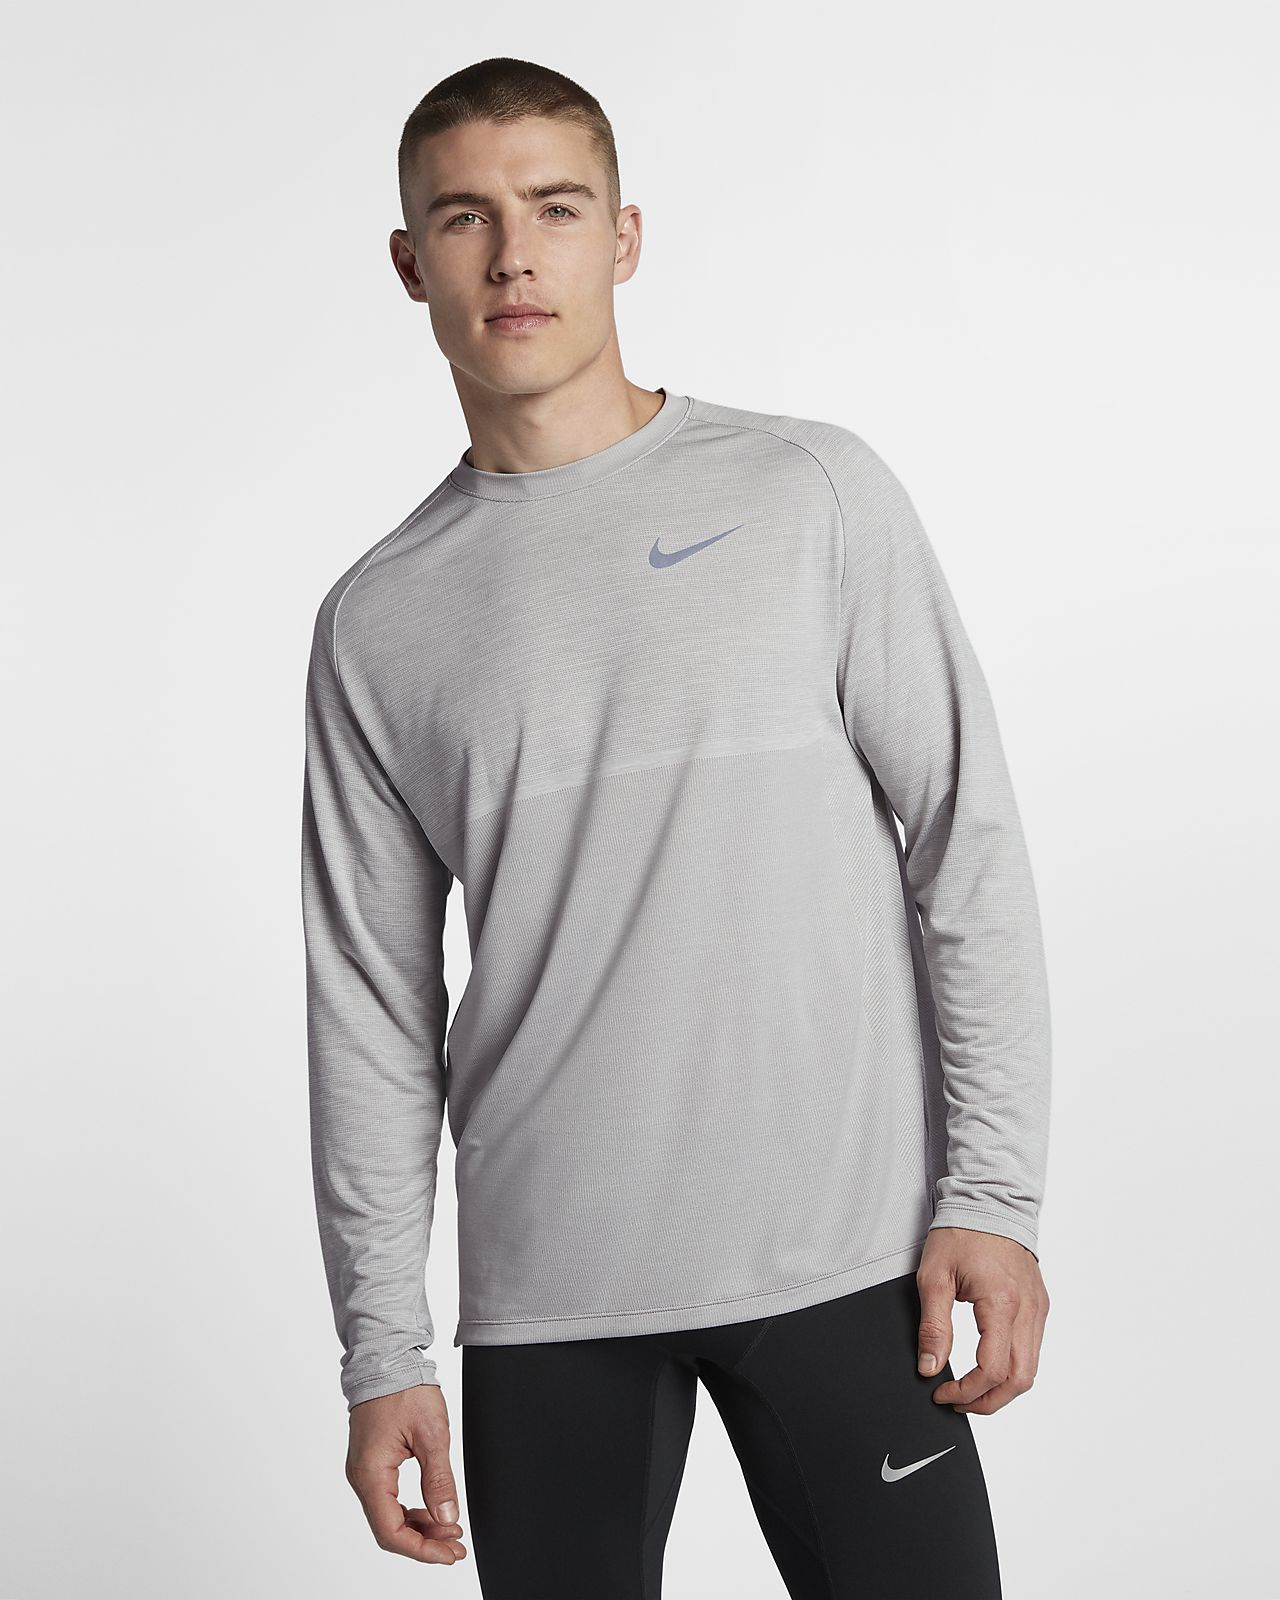 1410eb235f9be Nike Dri-FIT Medalist Men s Long-Sleeve Running Top. Nike.com AU